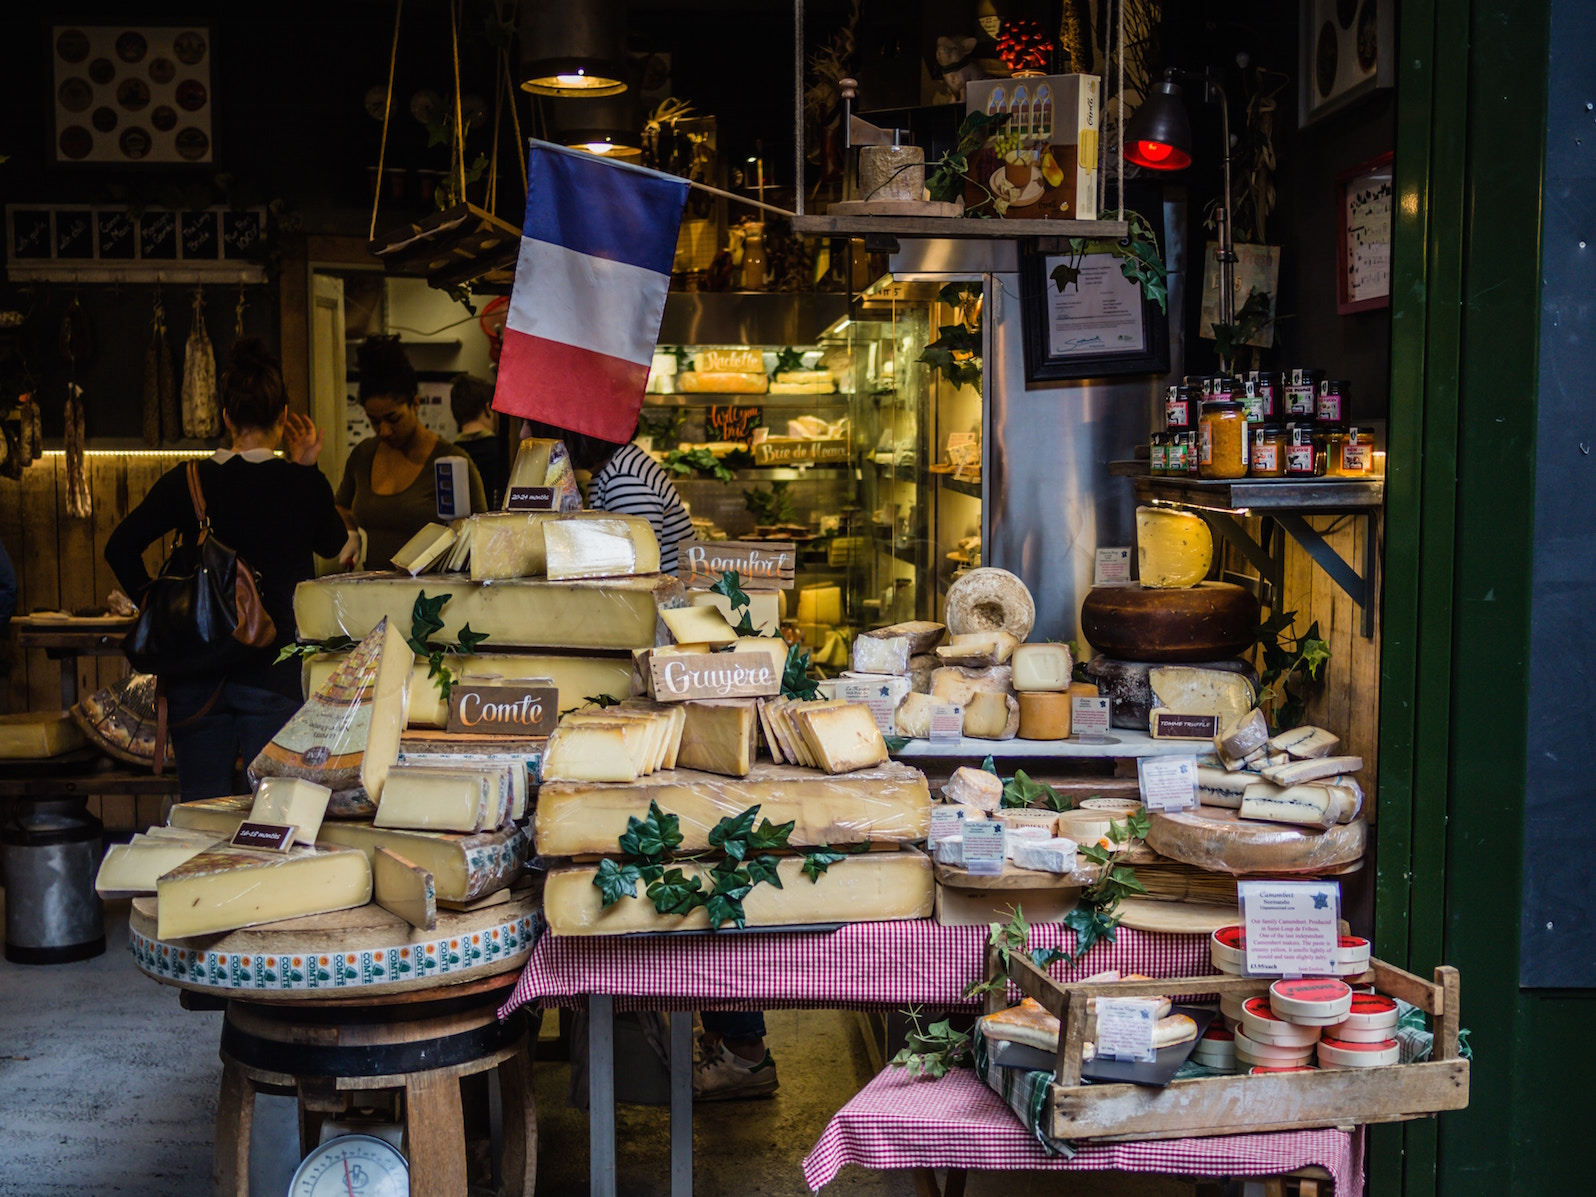 Even France Wants Everyone to Eat Less Cheese